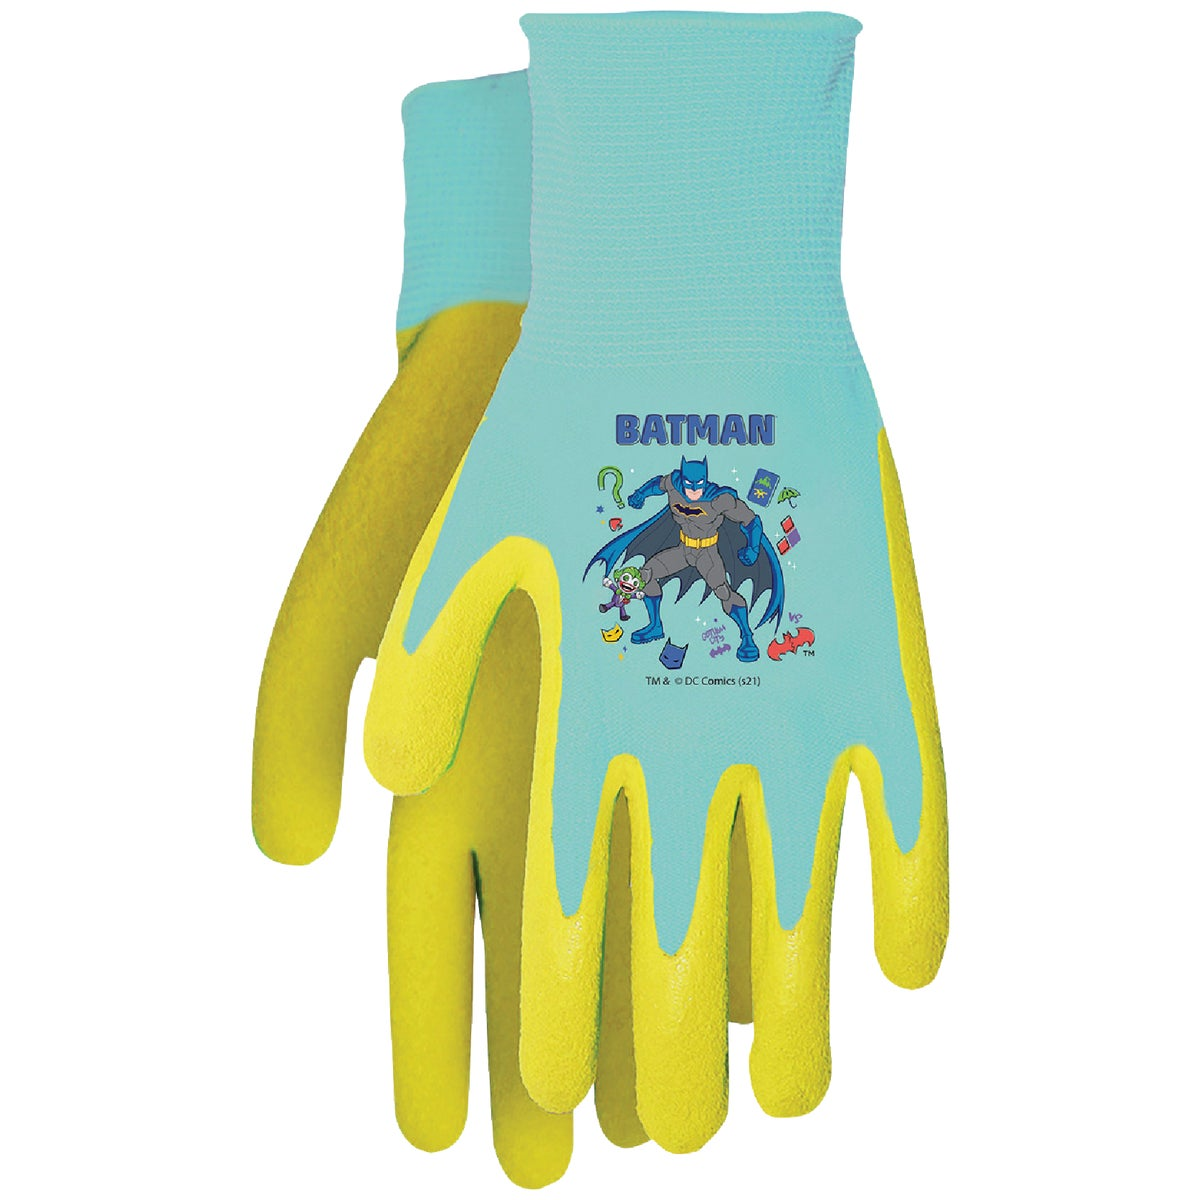 KIDS SPONGBOB GRIP GLOVE